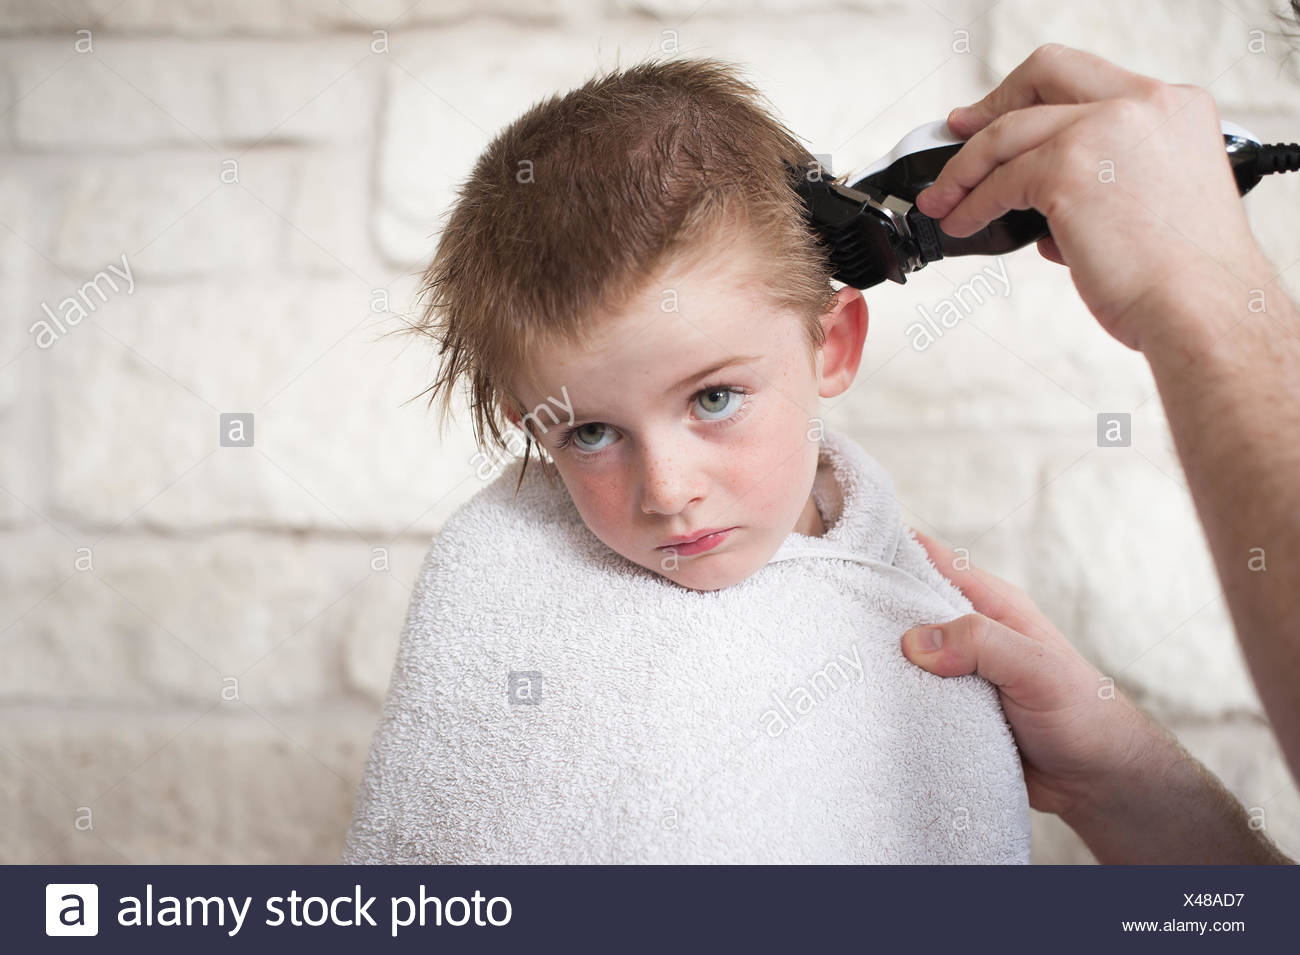 Boy getting a buzz hair cut by his father - Stock Image